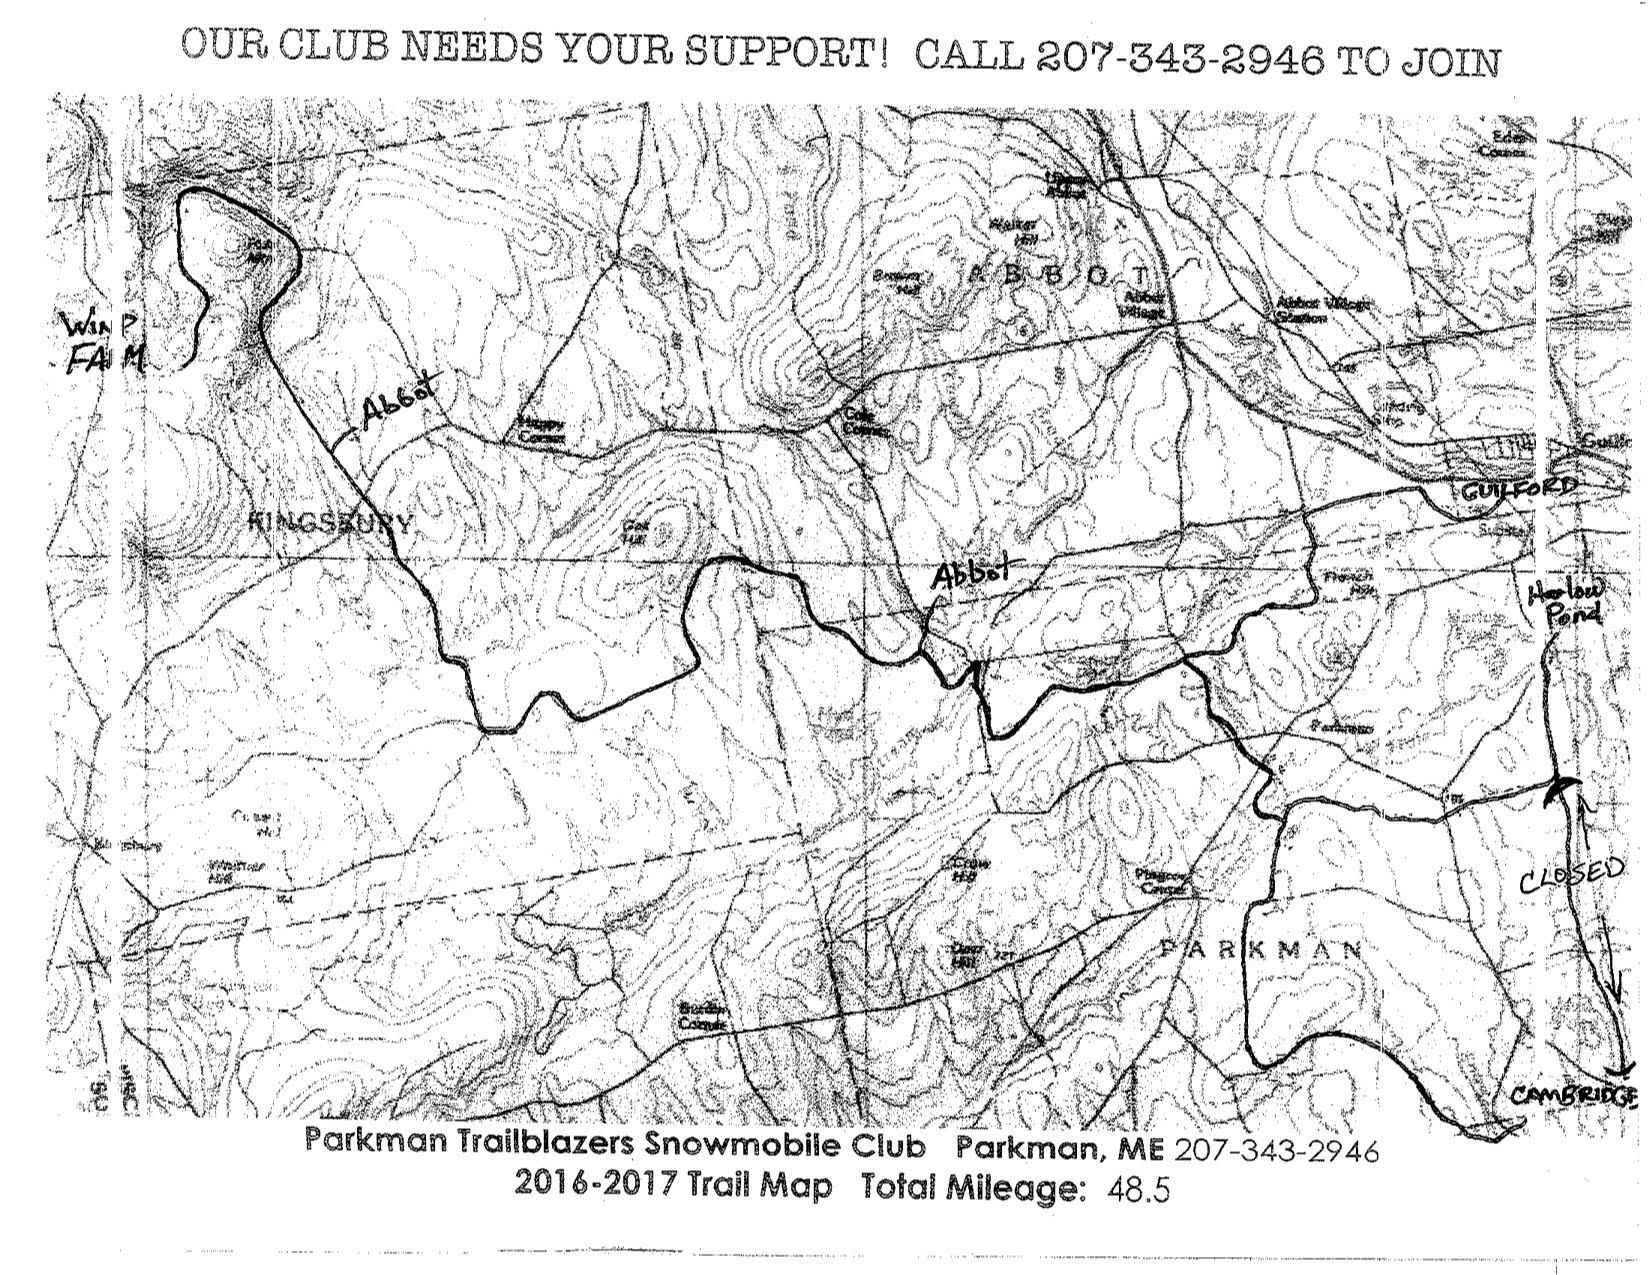 Parkman Trailblazers Snowmobile Club | Town of Parkman on northern maine road maps, maine wildlife management districts, maine woods map, maine wine trail, parsonsfield maine map google maps, maine canada border towns, maine county map with population, winds rivers range trails maps, town of hermon tax maps, sc trail maps, maine its map, maine lakes depth charts, allagash wilderness waterway river maps, maine civil war museum, maine atv trail system, maine atv trails by county, eagle cap trail maps, maine mt. katahdin trails, maine eastern trail bike, houlton maine tax maps,